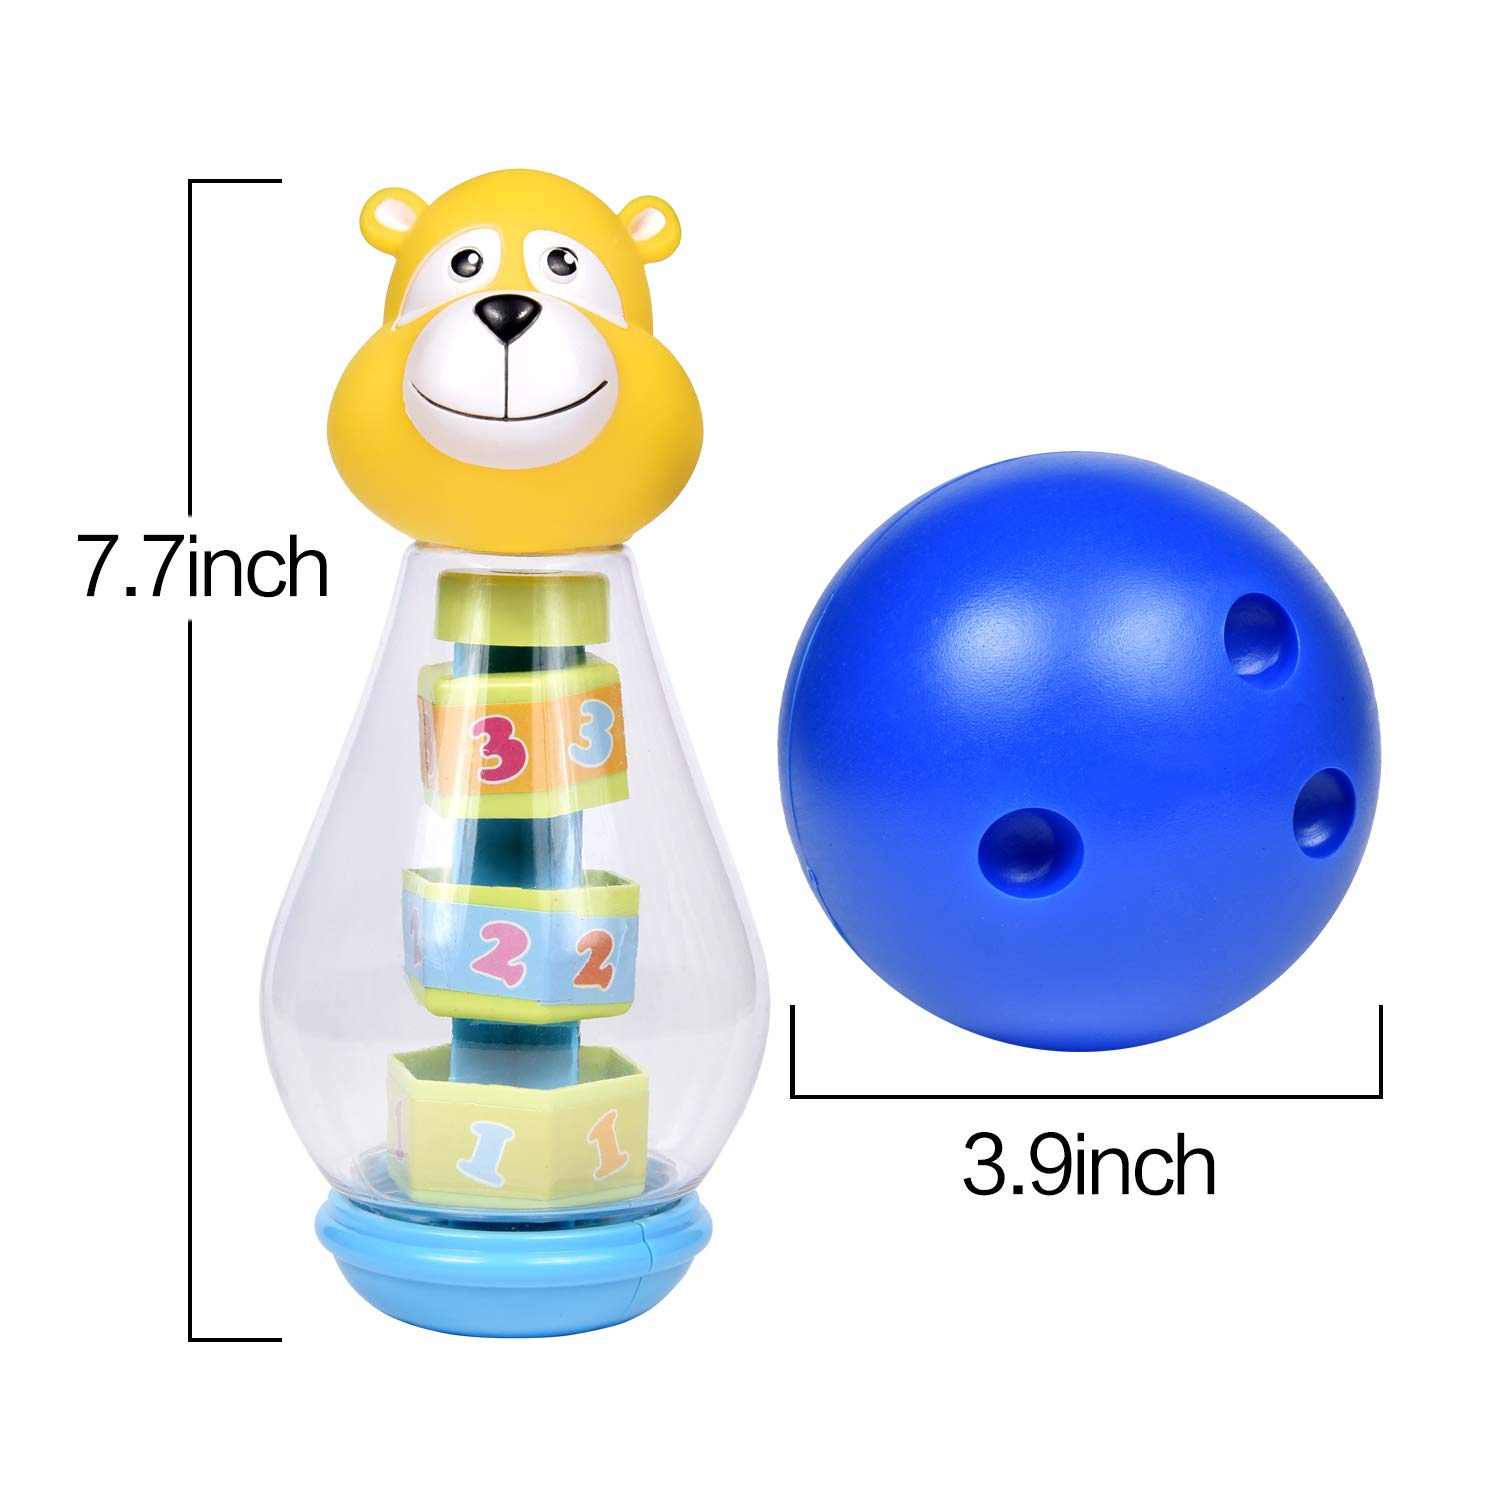 Bowling Set for Toddlers with 6 Animal Head Bowling Pins and 2 Bowling Balls, Toddler Outdoor Toys, Bowling Game for Kids by FUN LITTLE TOYS (Image #4)